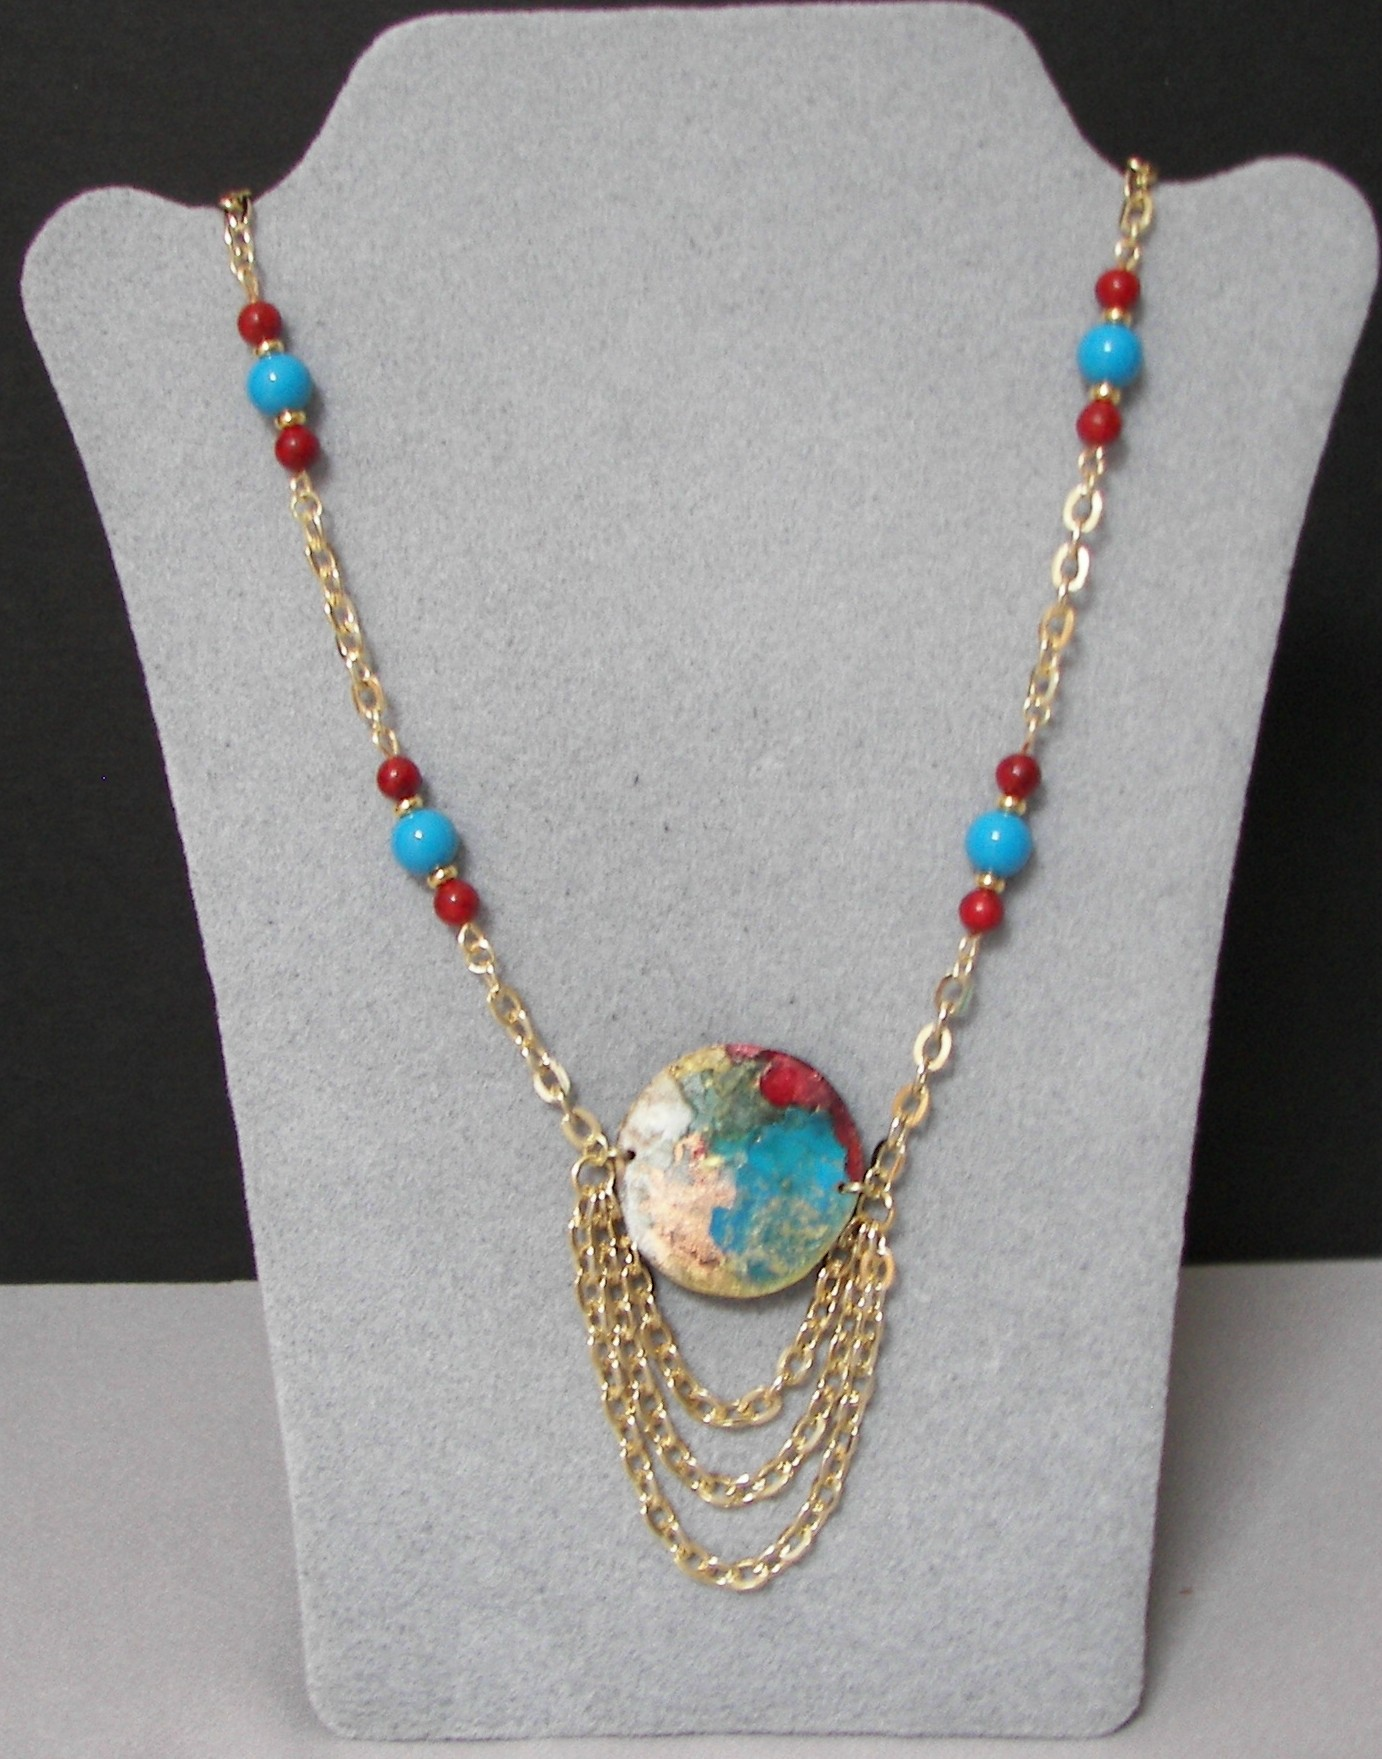 alcohol-ink-necklace-round-red-and-blue-beads